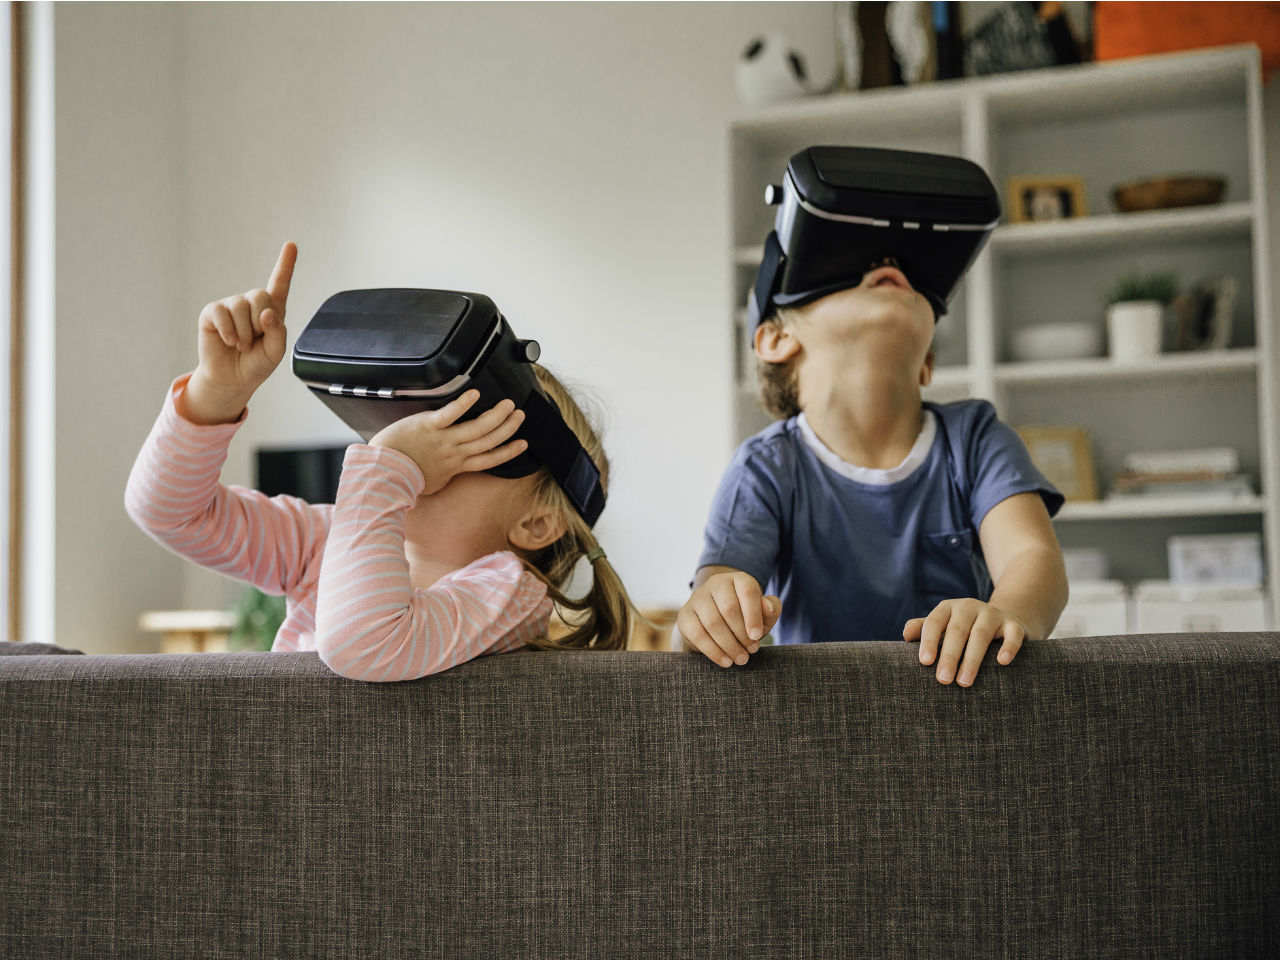 Two kids playing with VR glasses